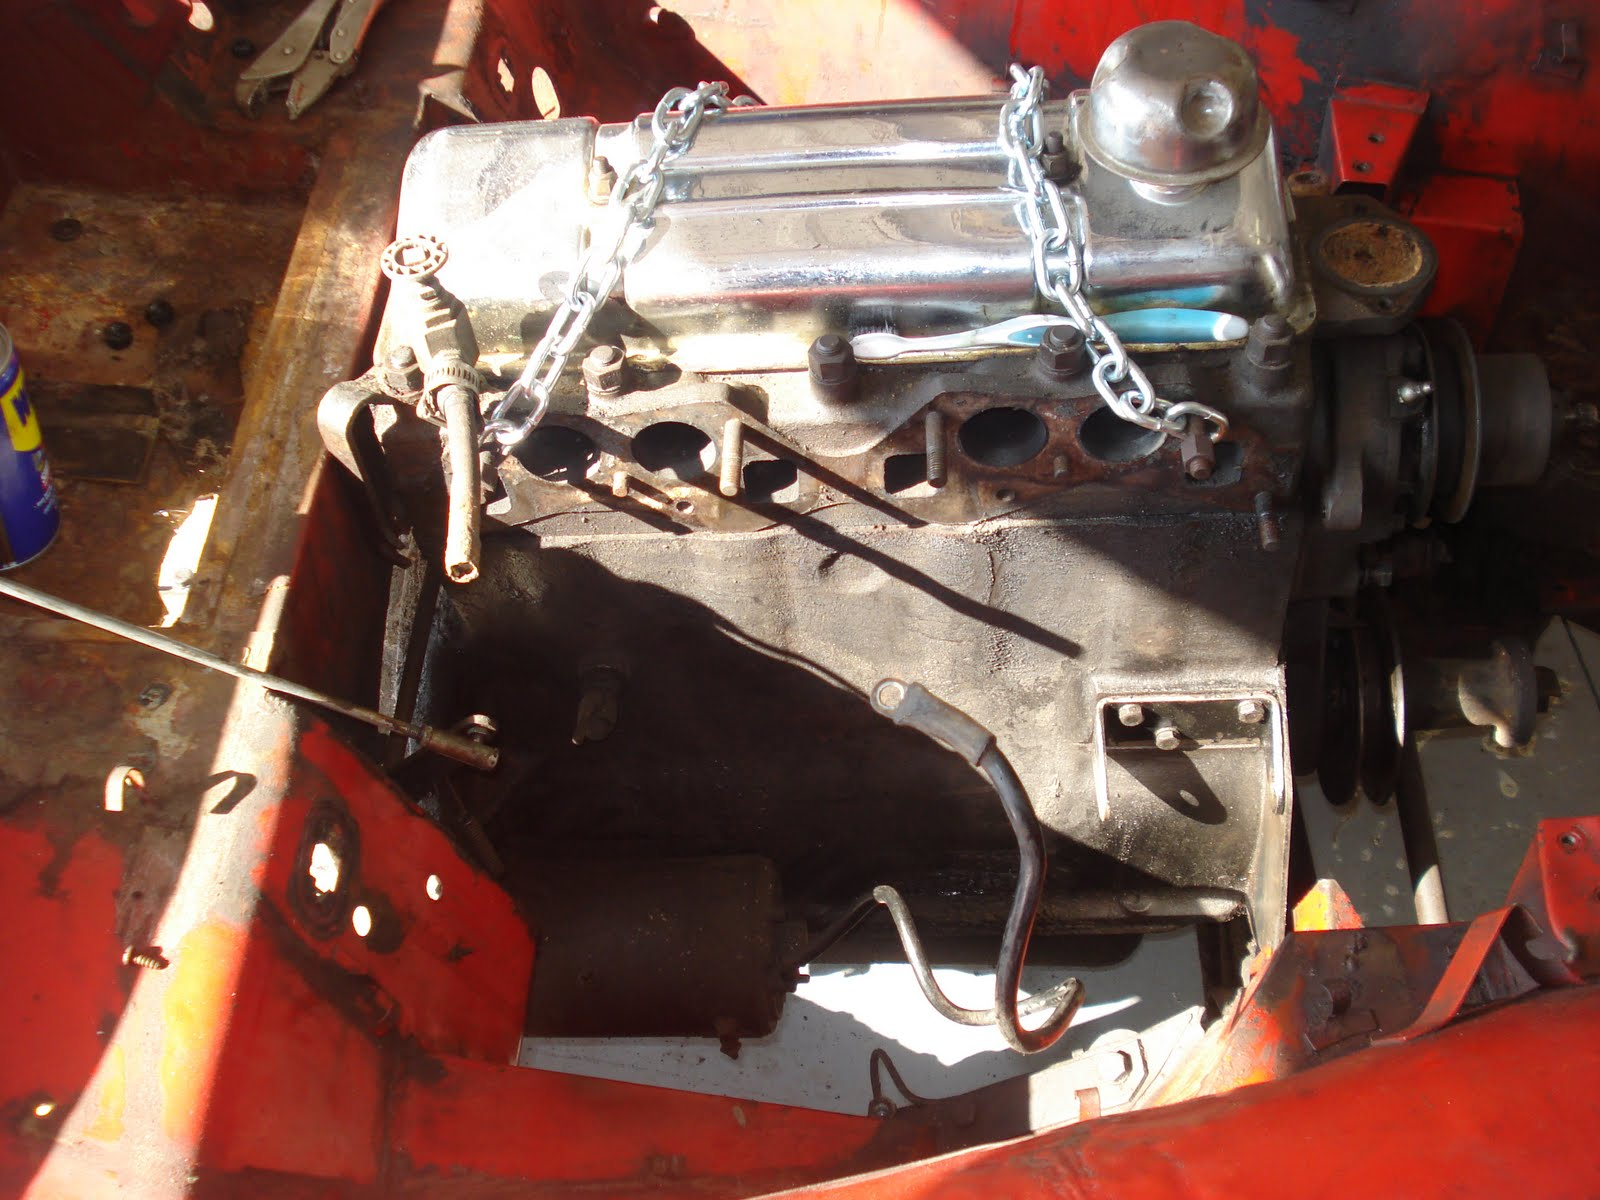 1962 TR3 Restoration  Removing the engine and transmission